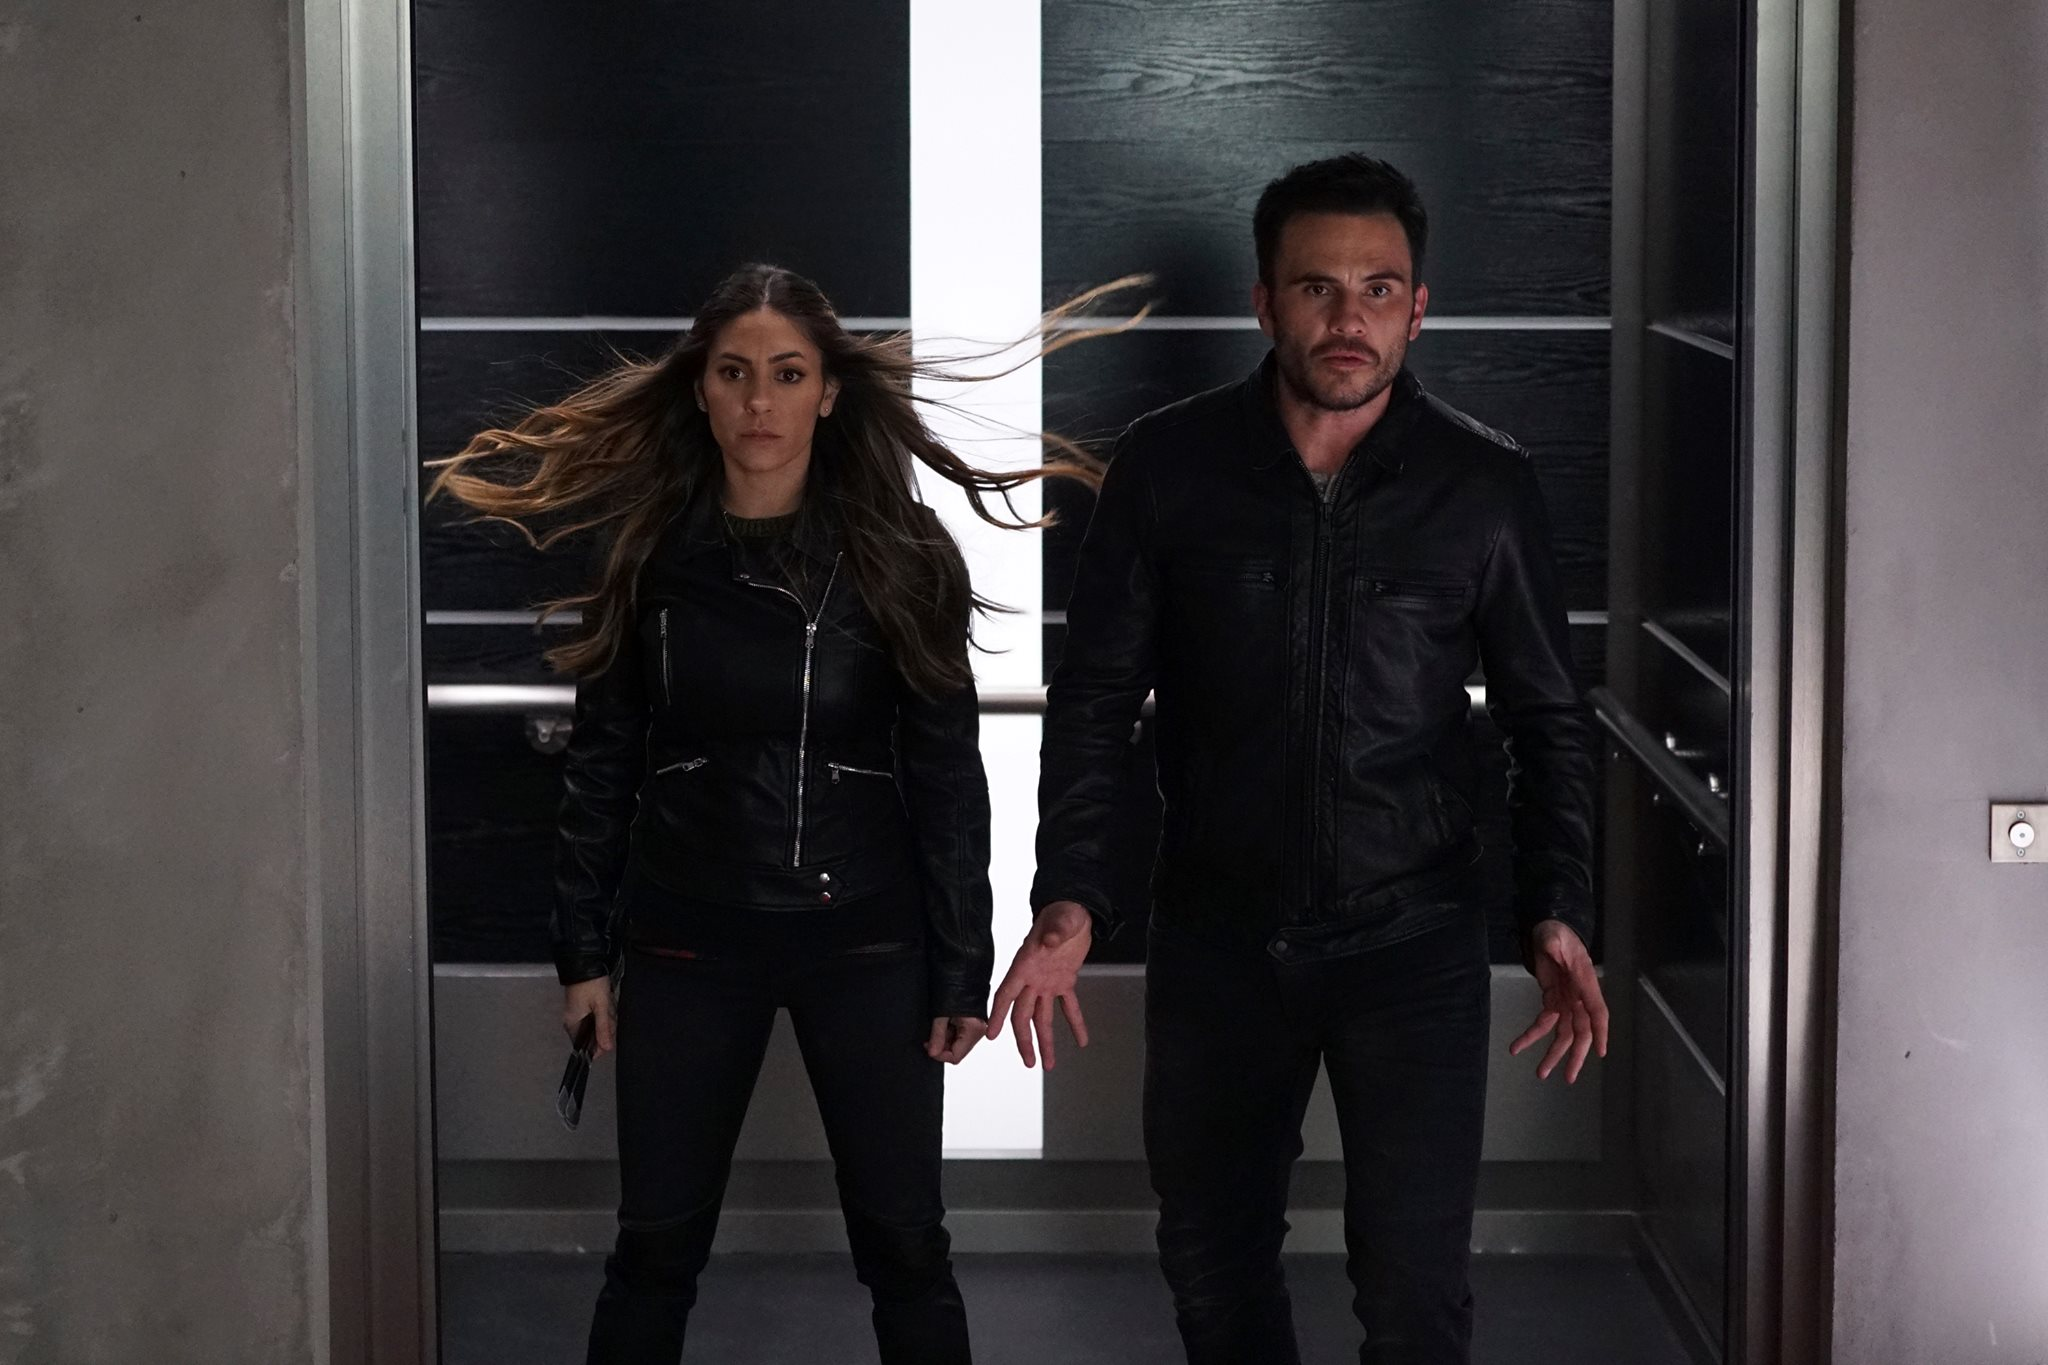 ABC 2016-17 Schedule Gives 'Agents of SHIELD' New Time